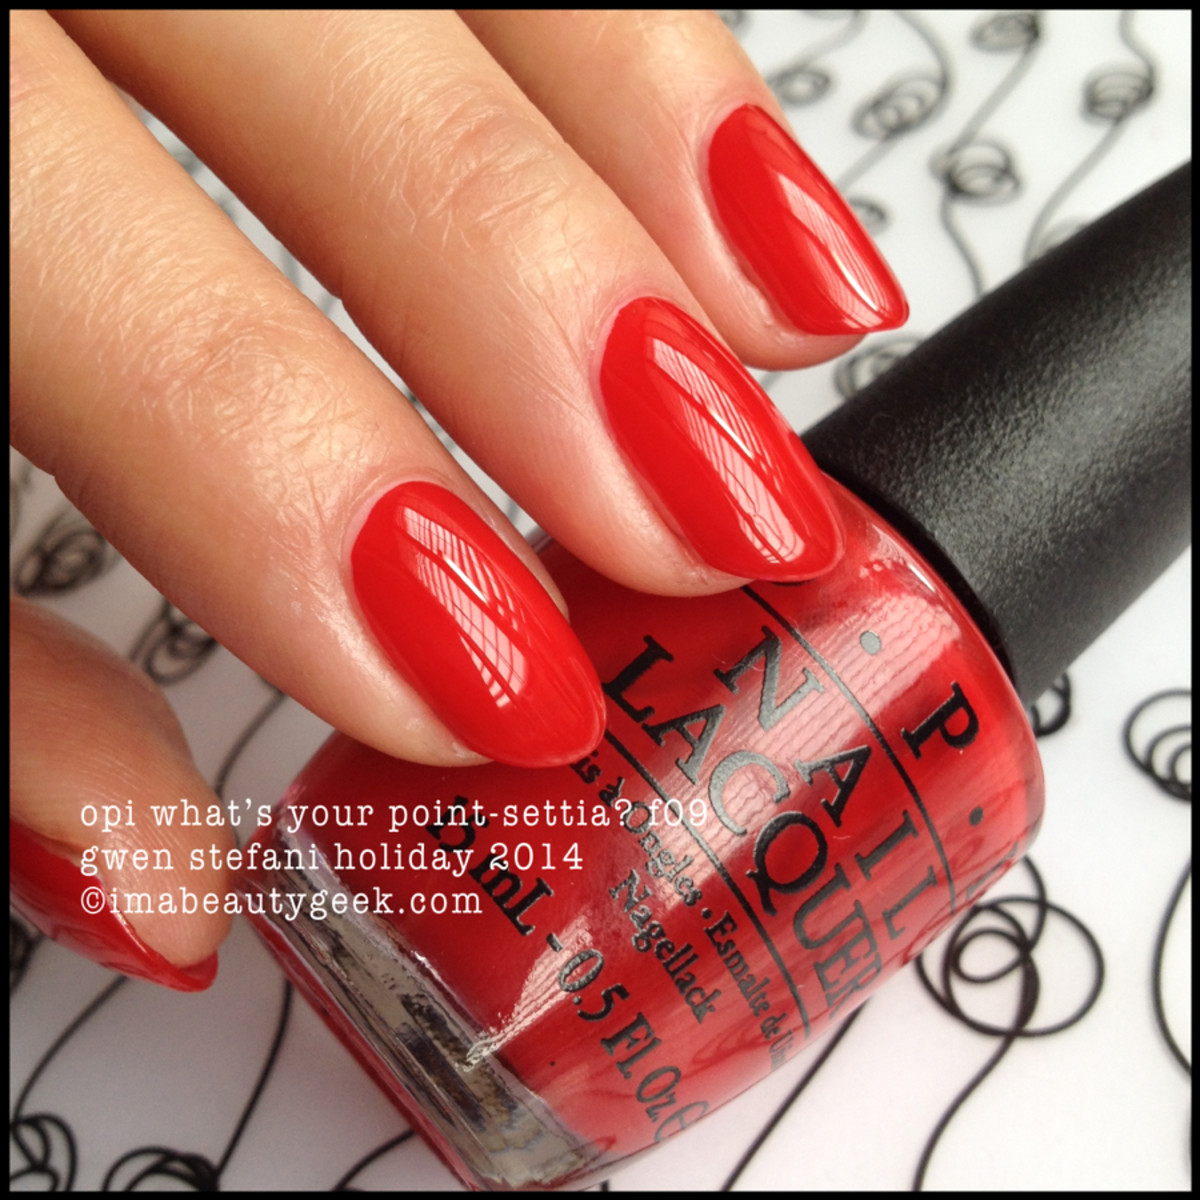 OPI What's Your Point-setta Gwen Stefani Holiday 2014